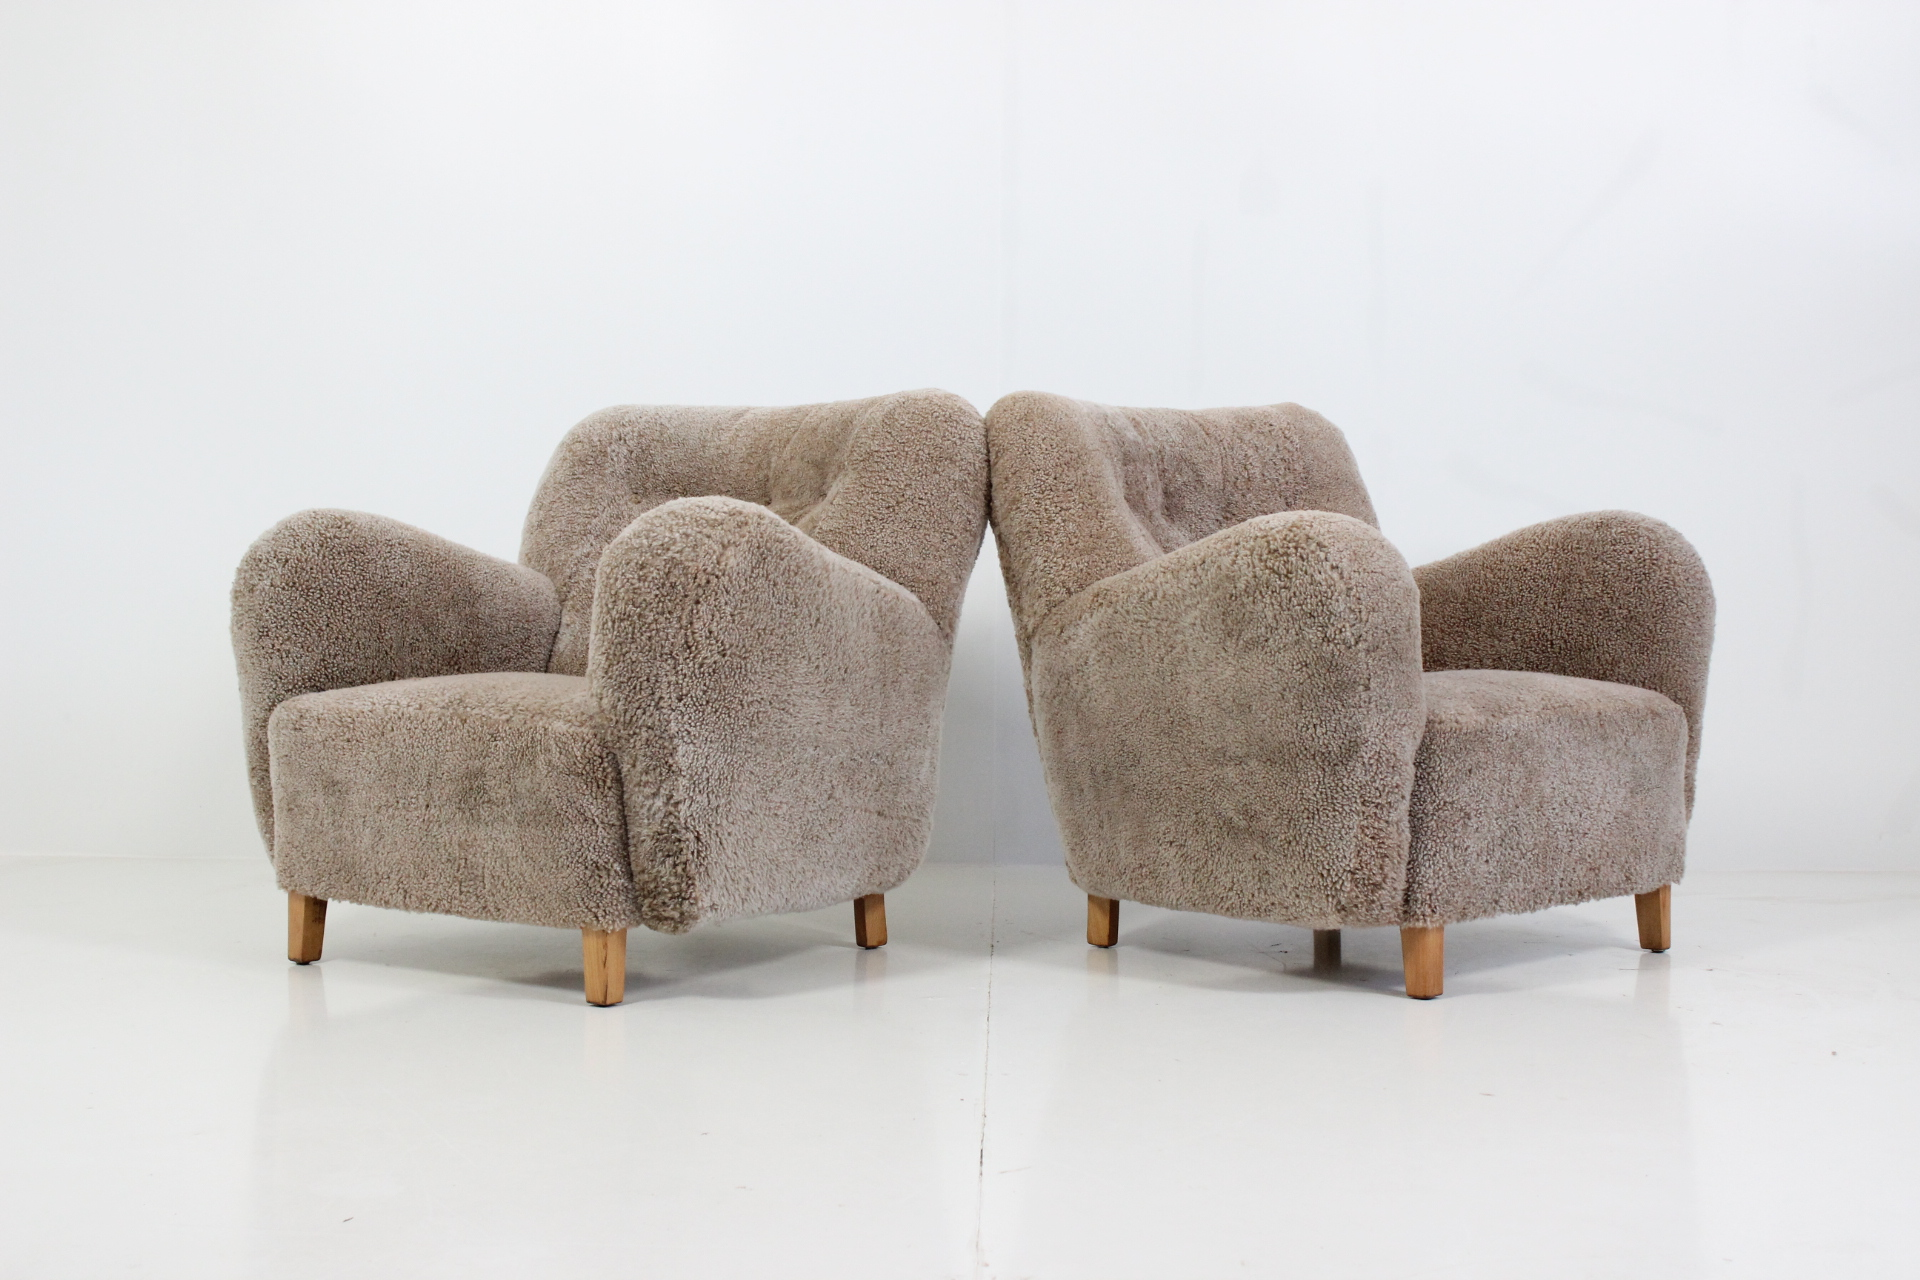 Retro Vintage Pair of Organic Shaped Lounge Chairs in Sheep Skin